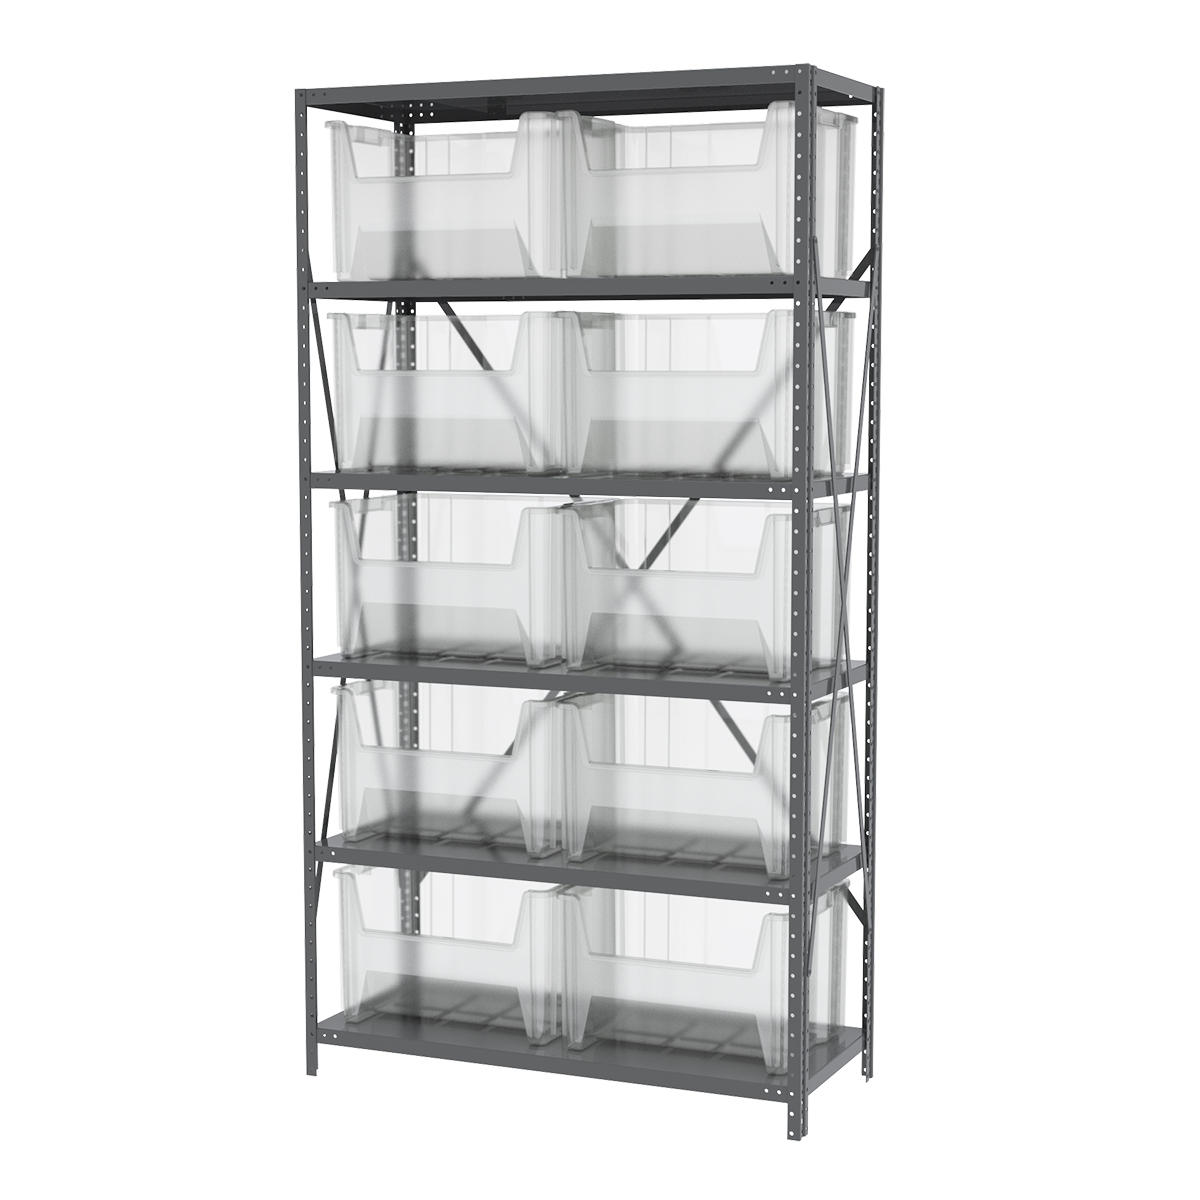 Steel Shelving Kit, 18x42x79, 12 Bins, Gray/Clear.  This item sold in carton quantities of 1.